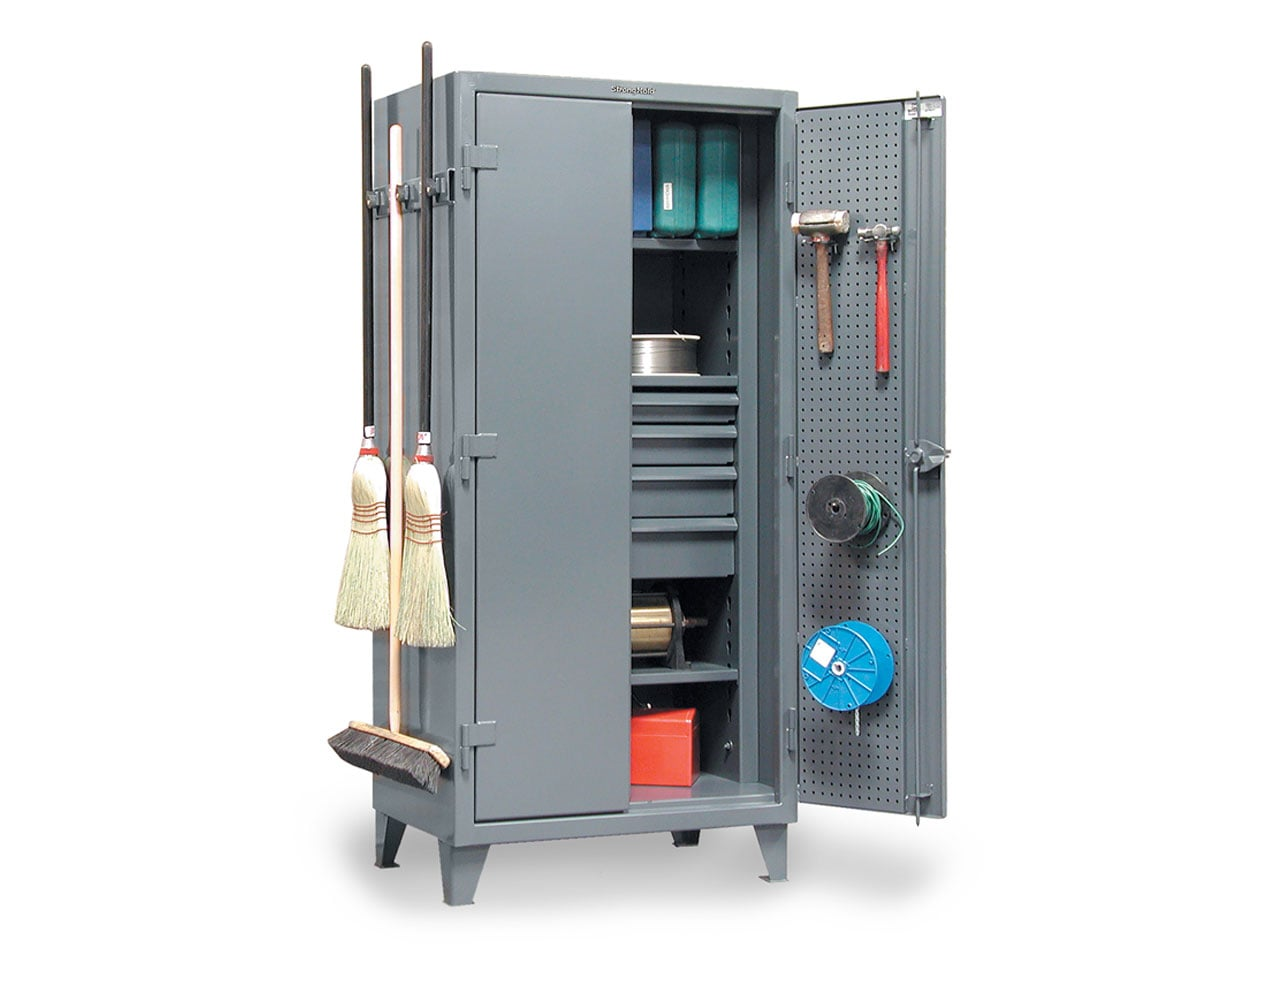 Extra Heavy Duty 12 GA Cabinet with Pegboard Doors, Broom Handles, 4 Drawers, 3 Shelves   – 36 In. W x 24 In. D x 78 In. H